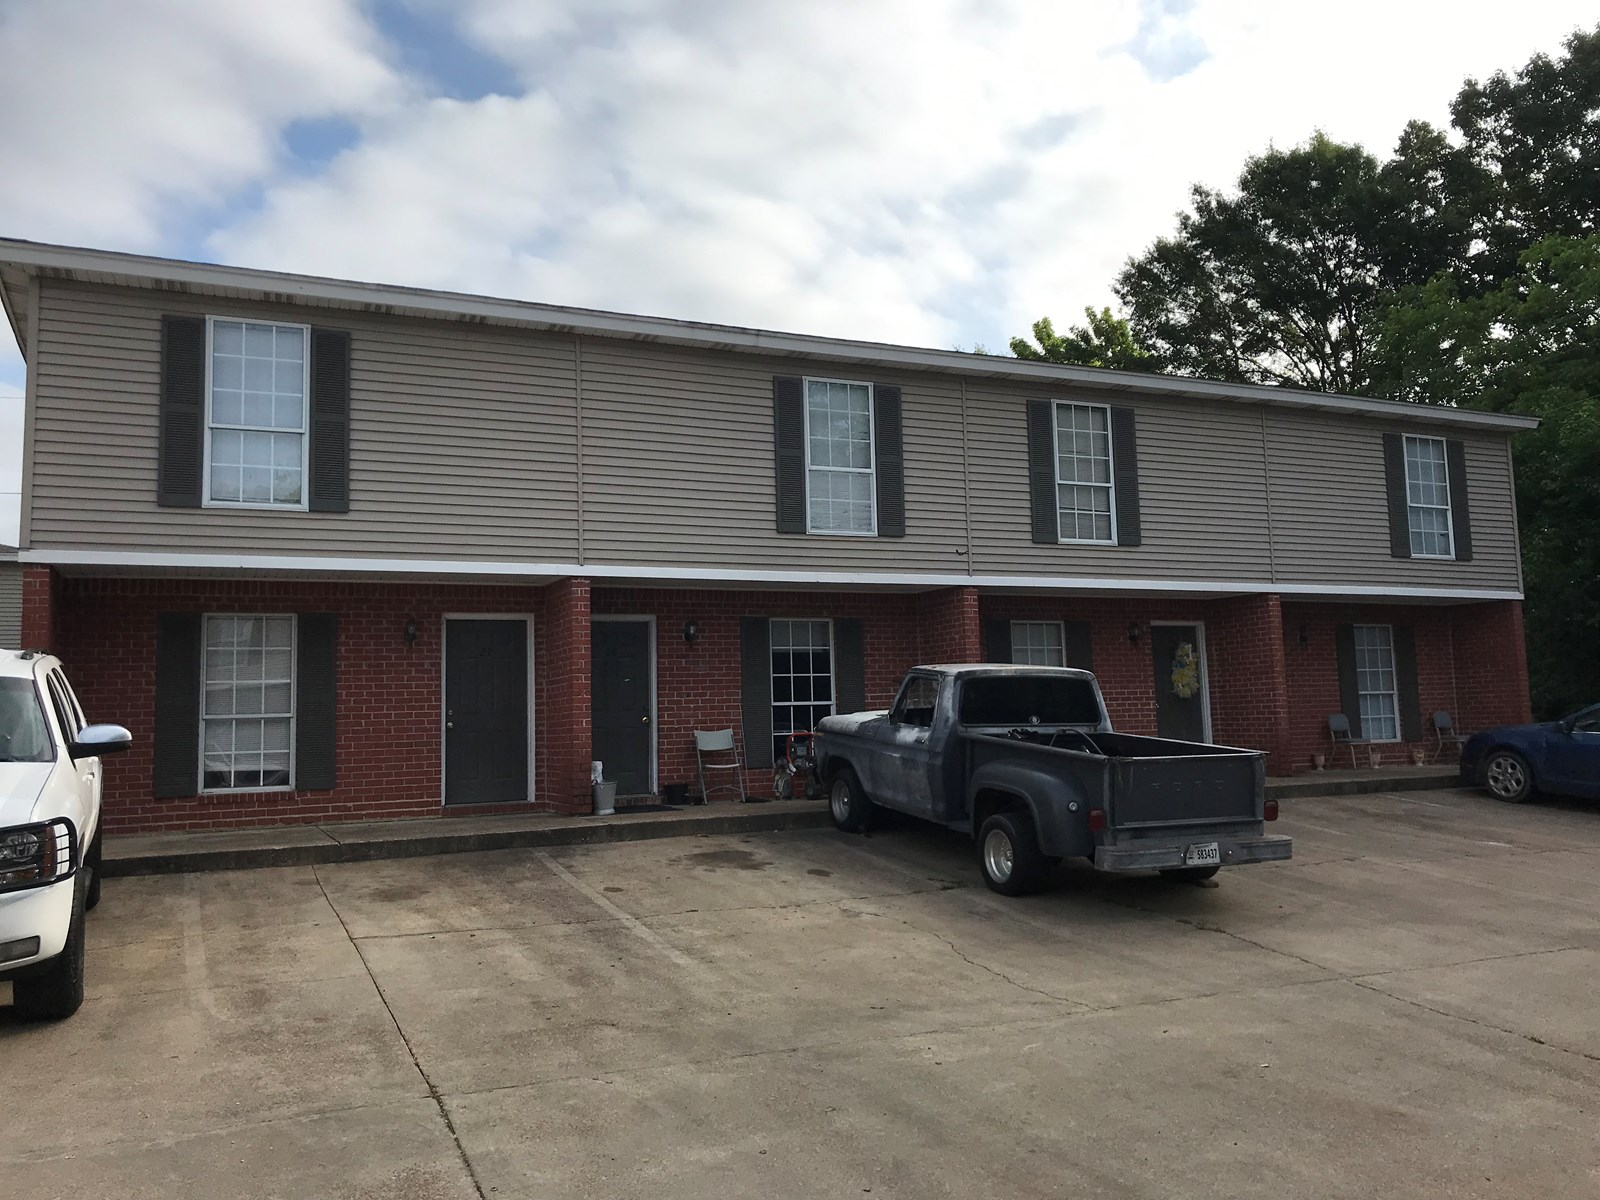 4-Plex For Sale: 1301 Louisville St, Starkville, MS 39759